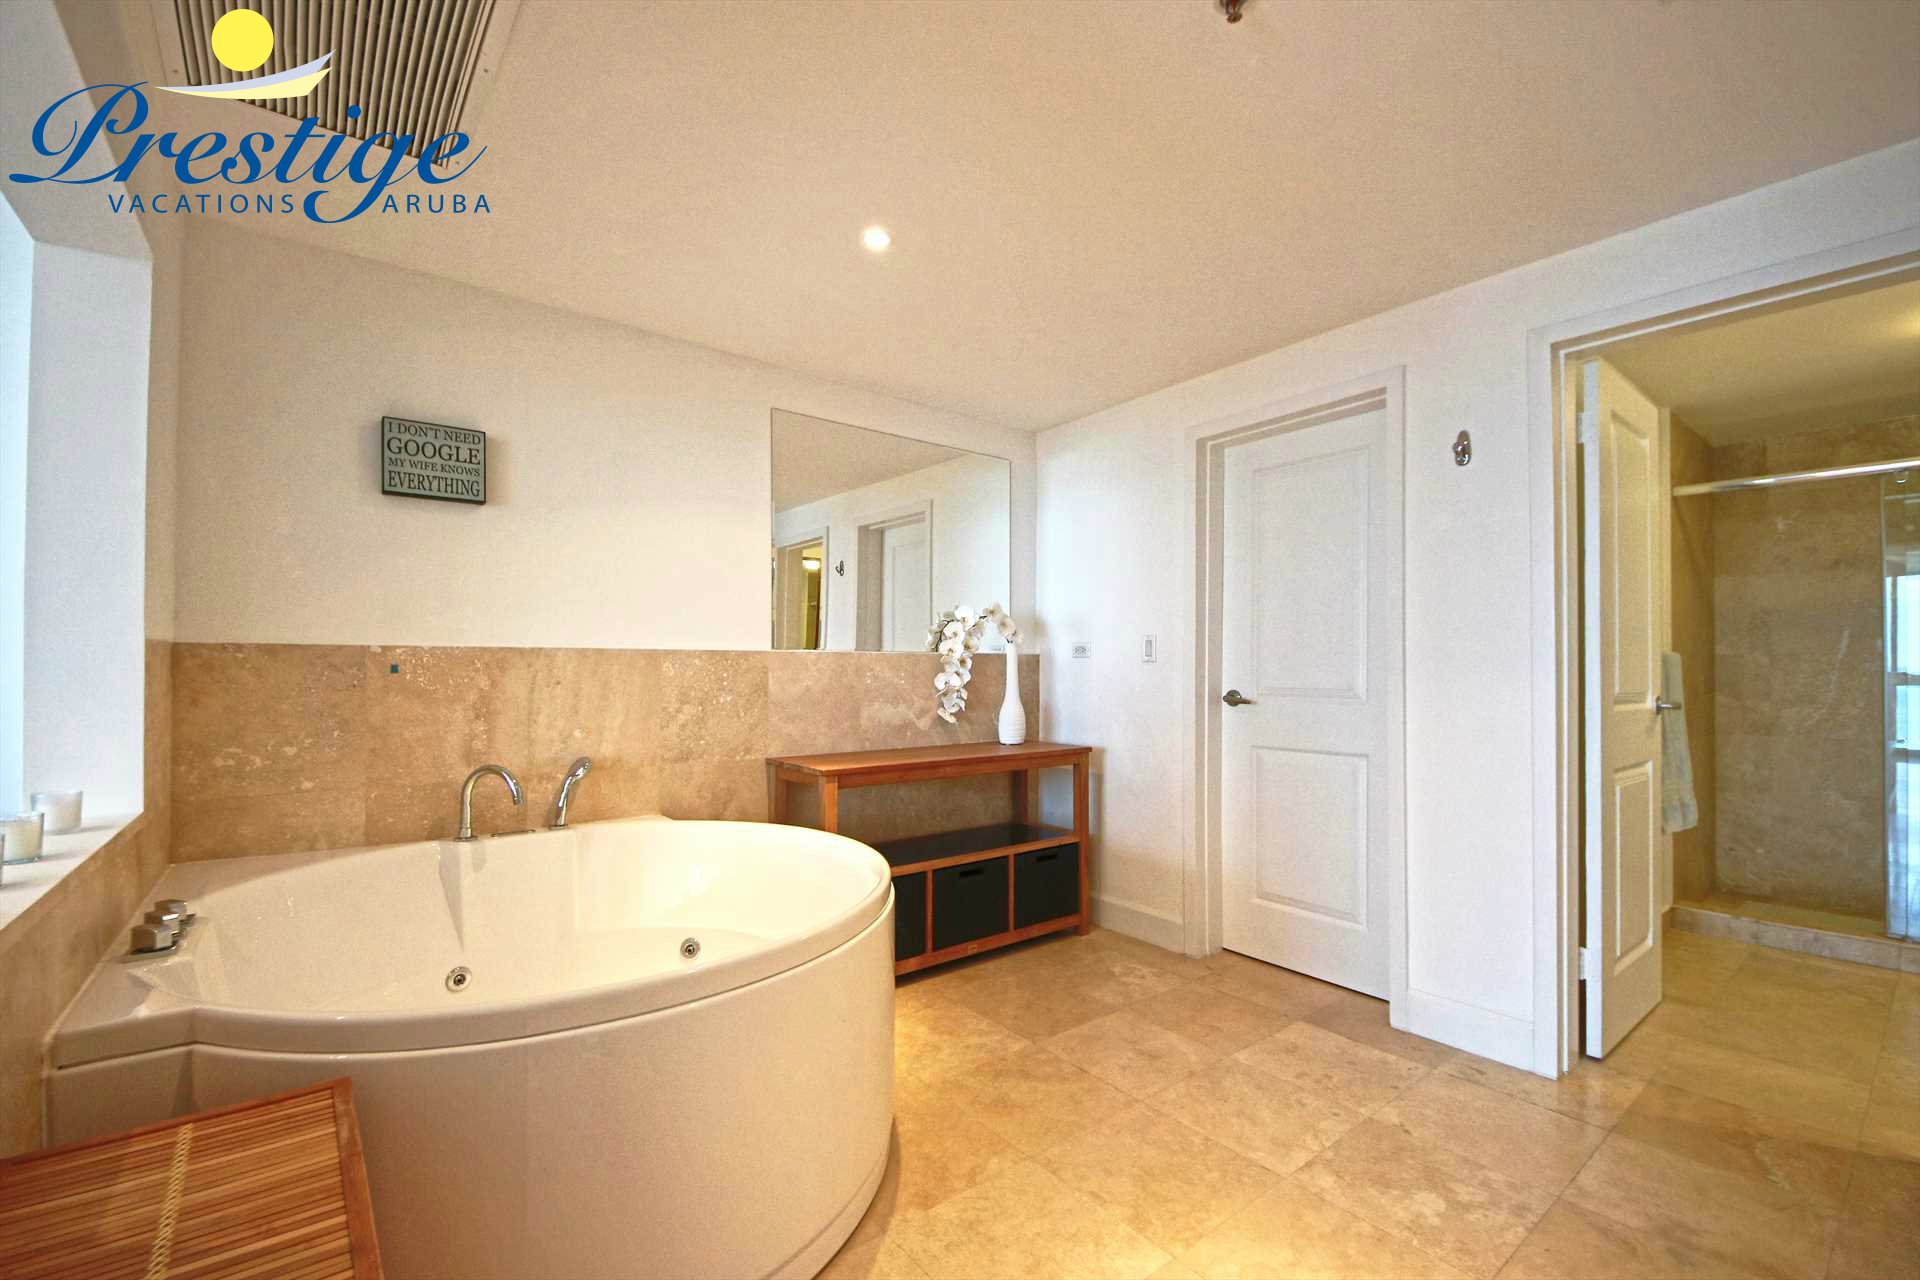 The master en-suite bathroom with a round jetted bathtub